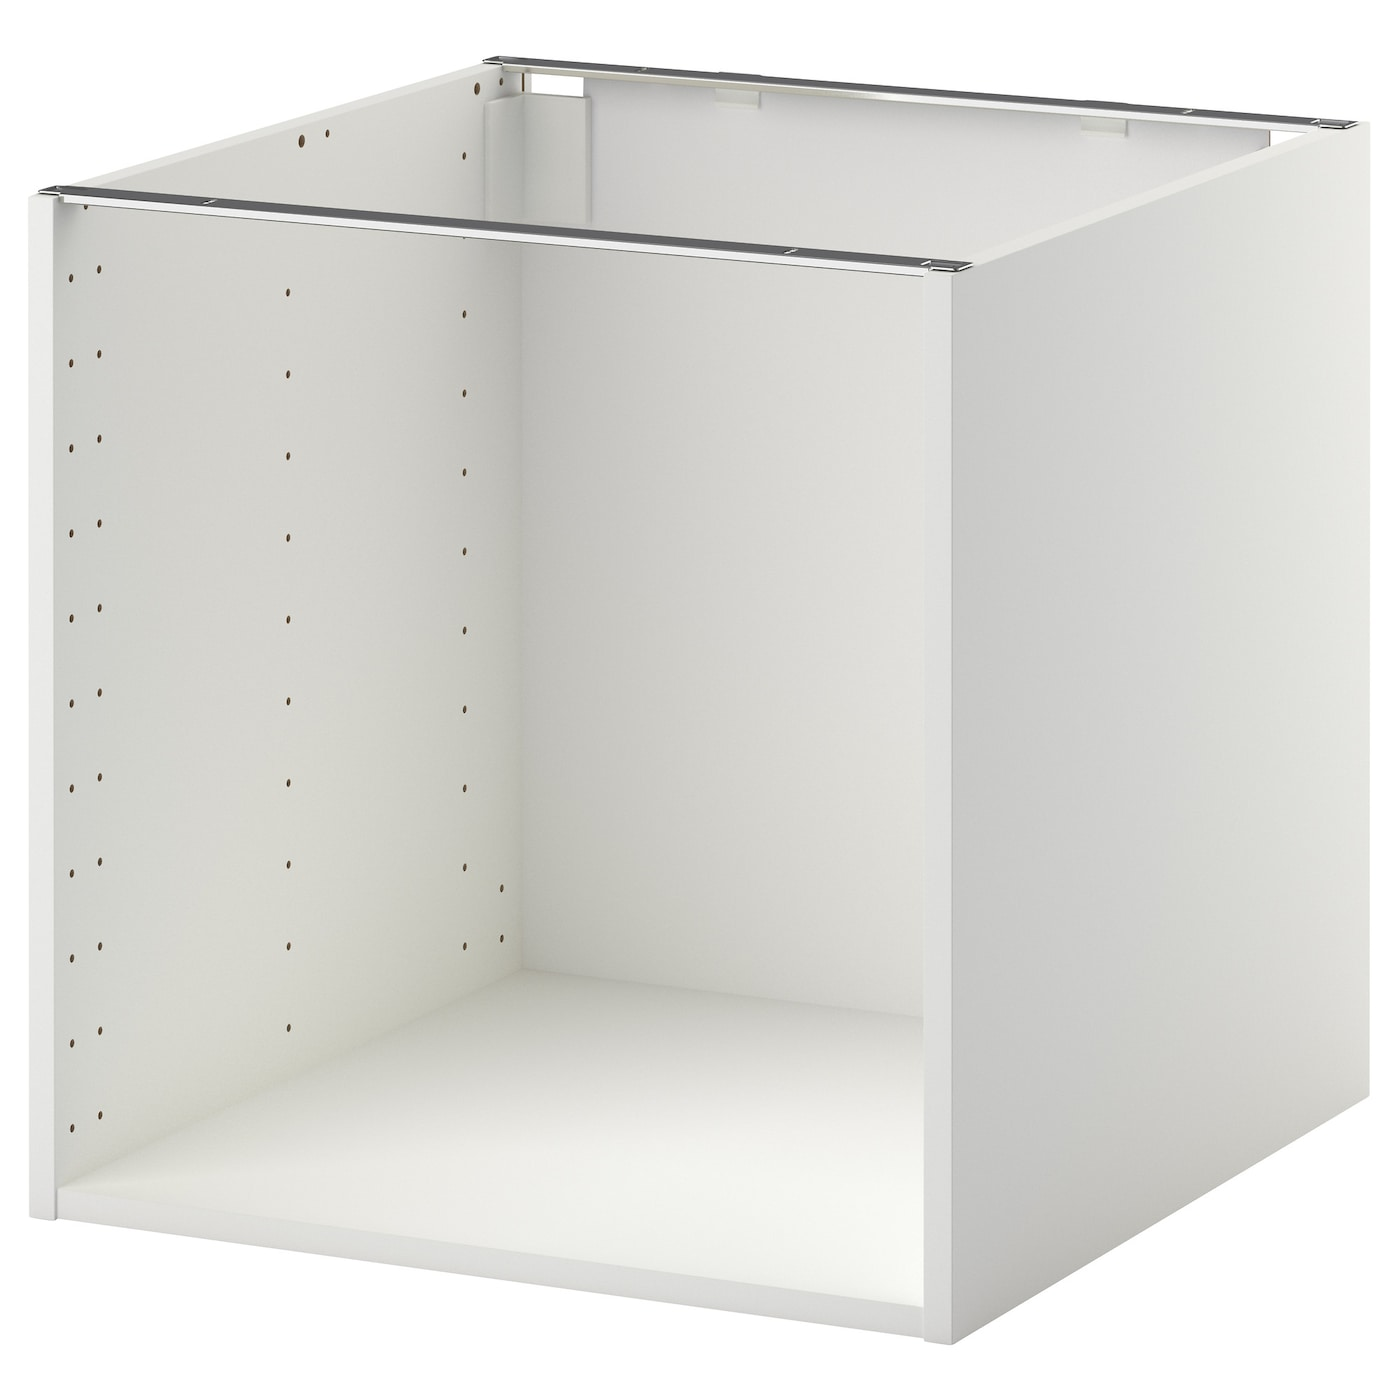 metod base cabinet frame white 60x60x60 cm ikea. Black Bedroom Furniture Sets. Home Design Ideas